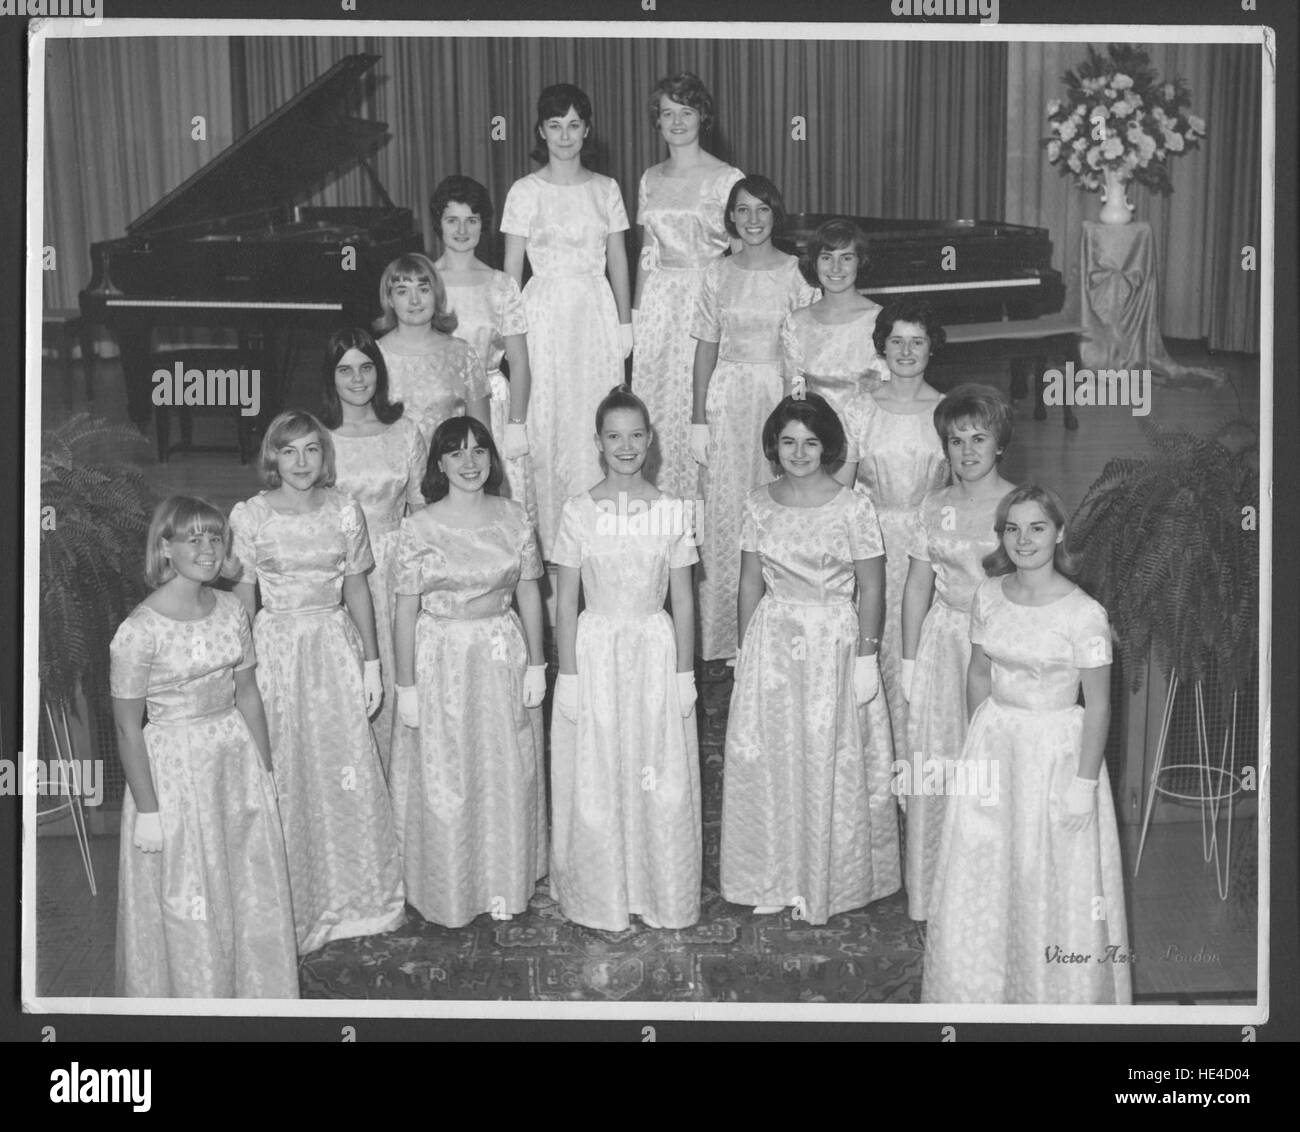 St Cecilia Singers in formal attire - singers were part of St. Joseph's School of Music in London, Ont. Photo - Stock Image